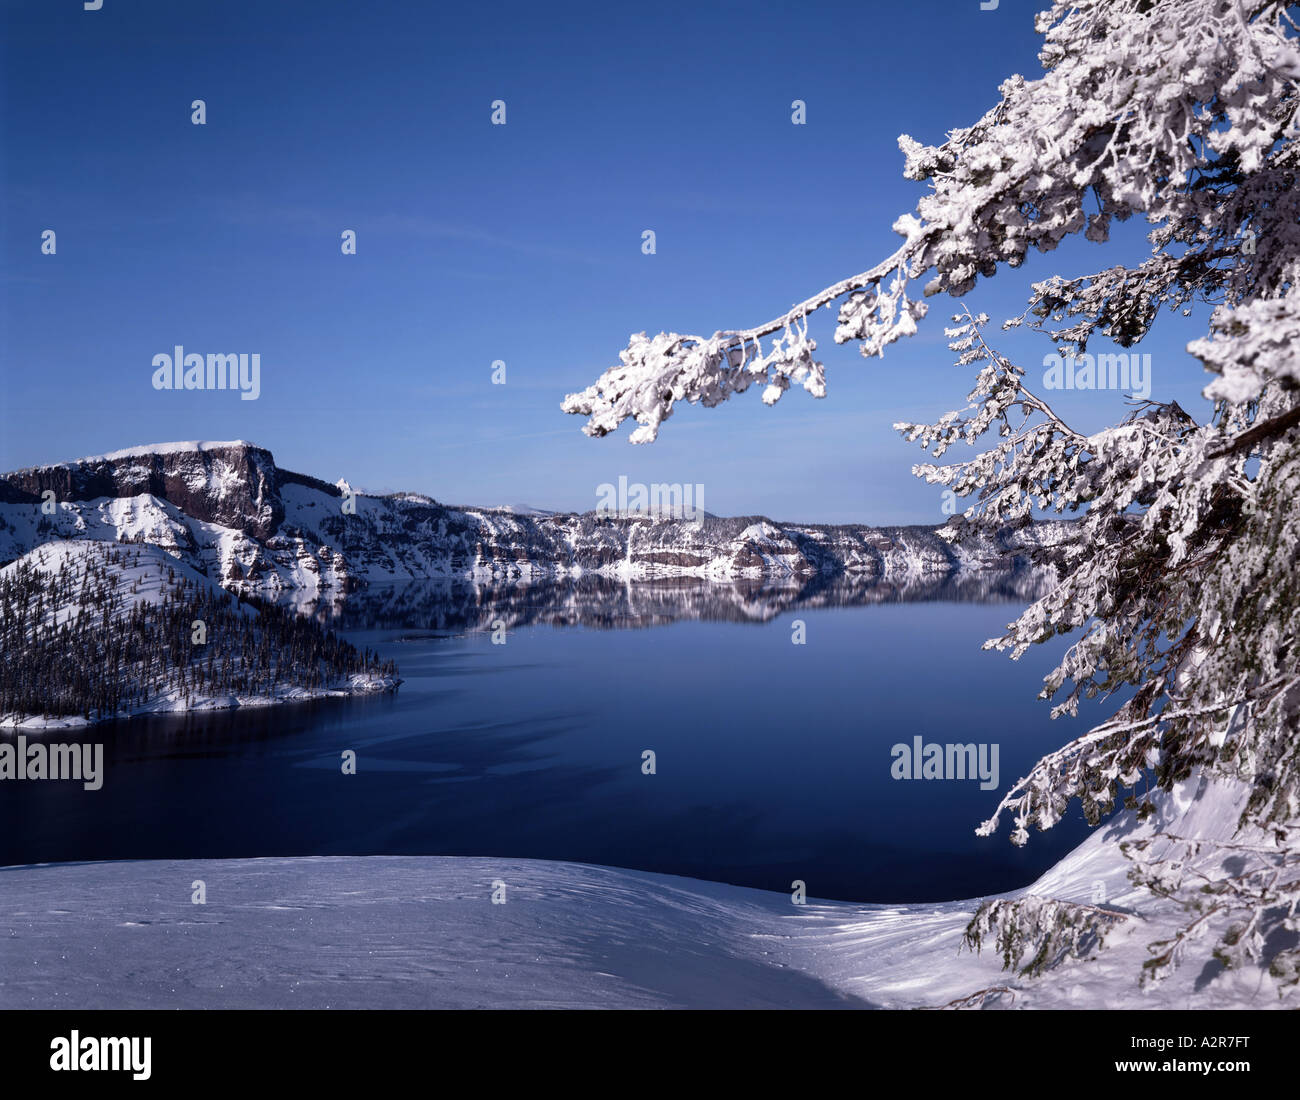 Ice tree branch frames a Winter view of Crater Lake National Park in ...